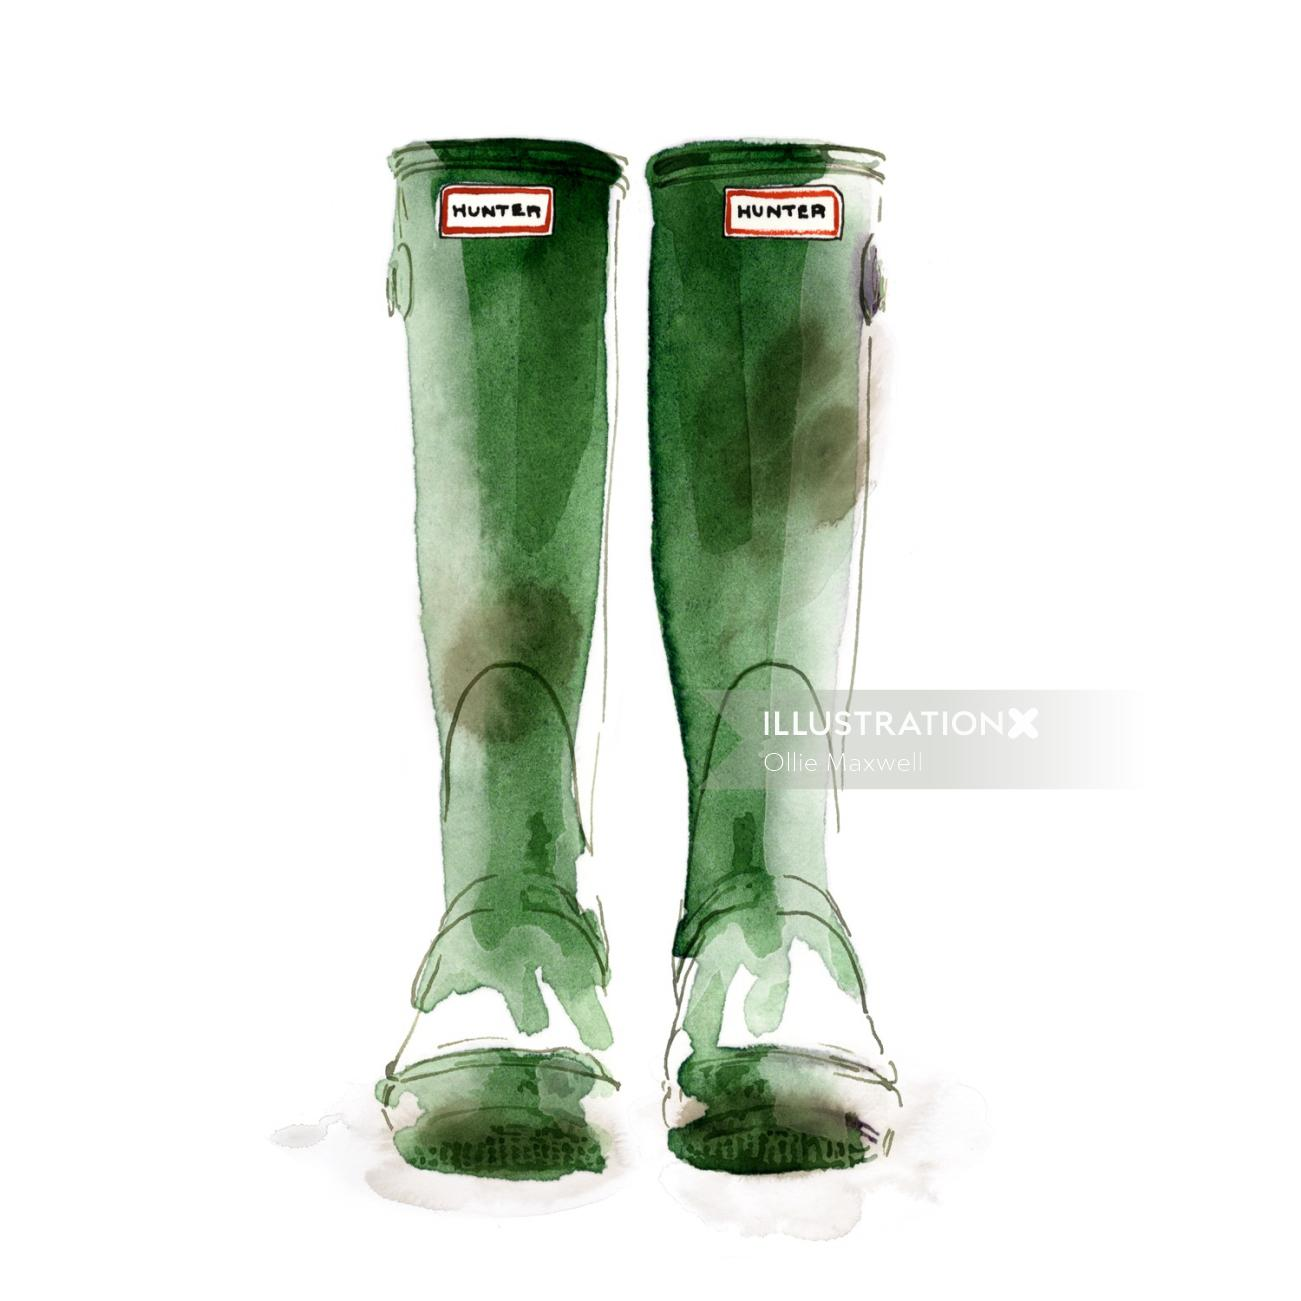 watercolor art of Wellingtons hunter boots